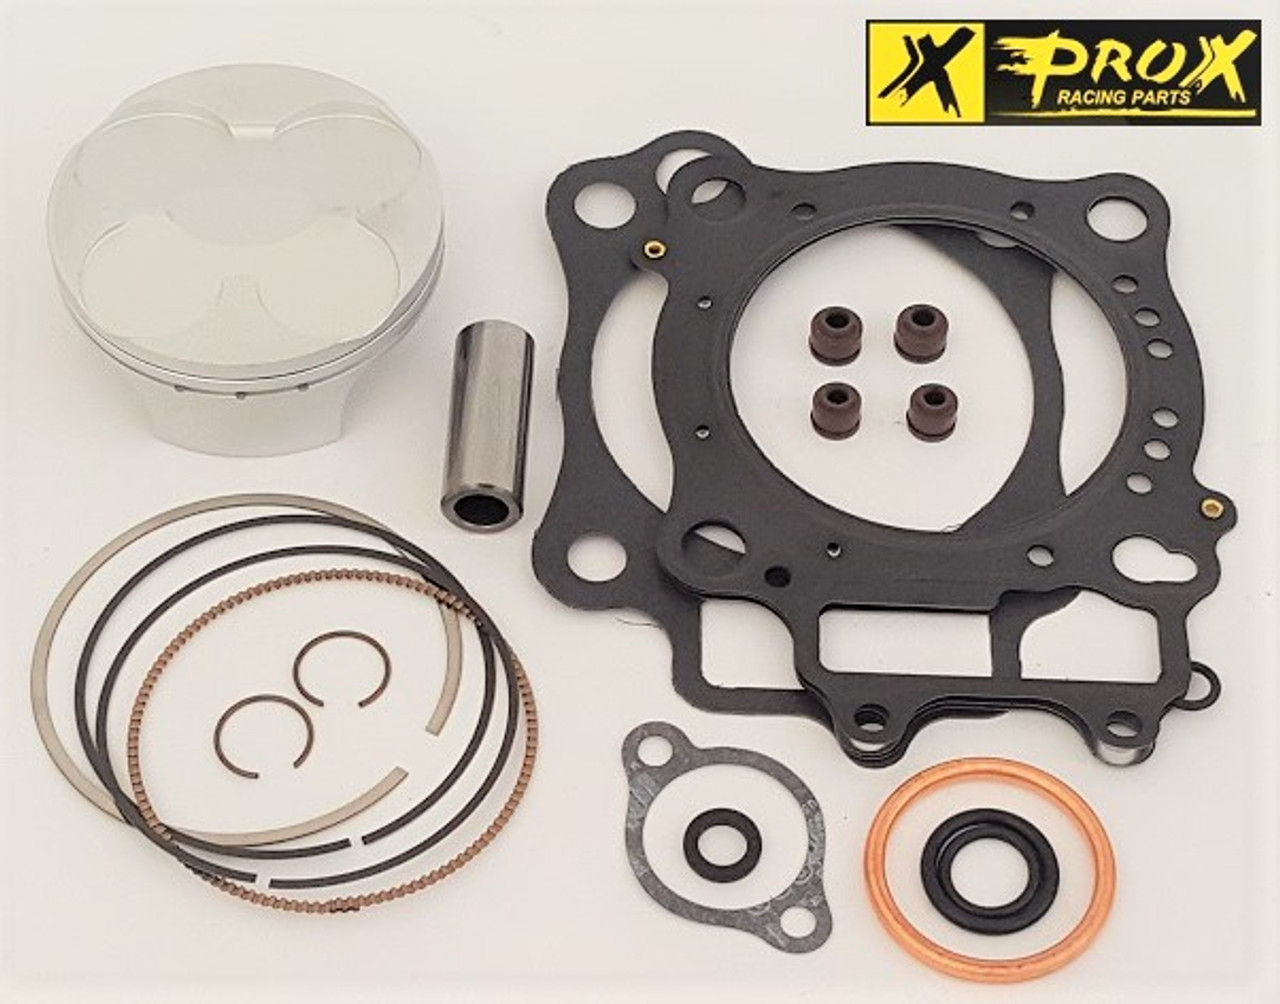 Auto Parts & Accessories Motorcycle Engine Gaskets & Seals ... on